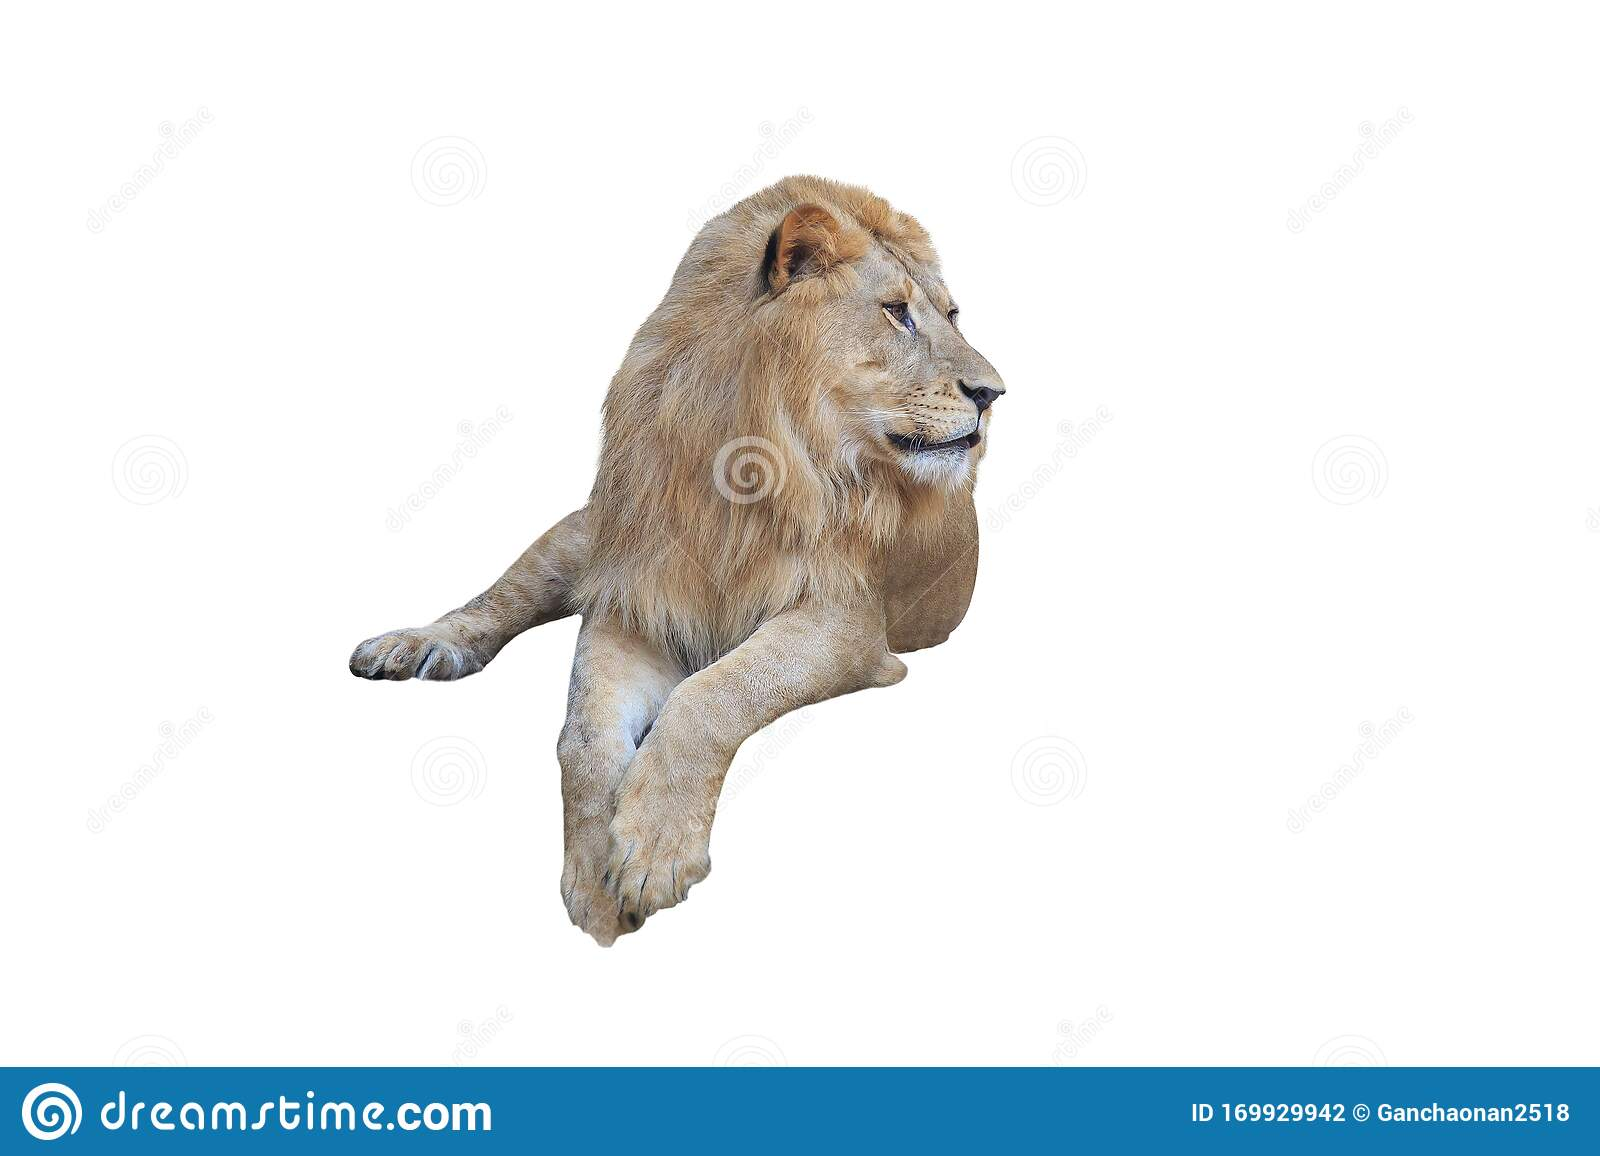 Lion Lying Down Stock Illustrations 56 Lion Lying Down Stock Illustrations Vectors Clipart Dreamstime Like most logos, and nearly all my work, it needed to work in any size, from very small to large. https www dreamstime com lion lying down facing panthera leo lion lying down facing panthera leo isolated white image169929942